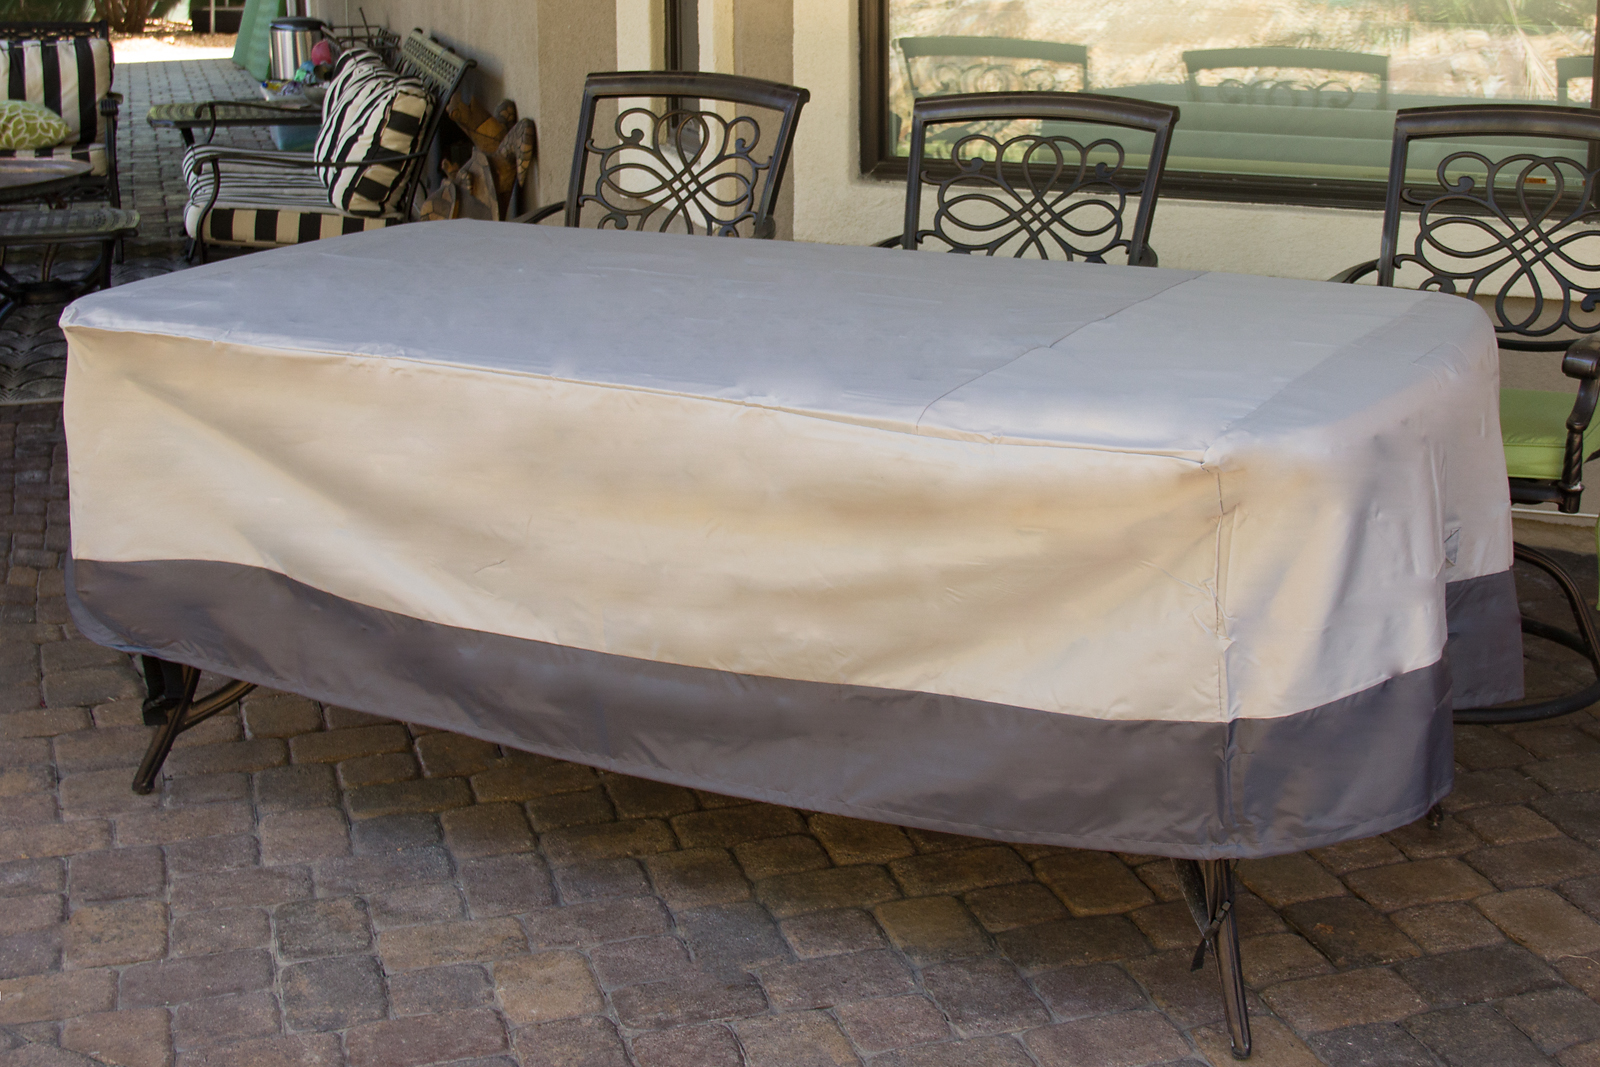 Dining table weatherproof outdoor furniture patio cover ebay for Covered deck furniture